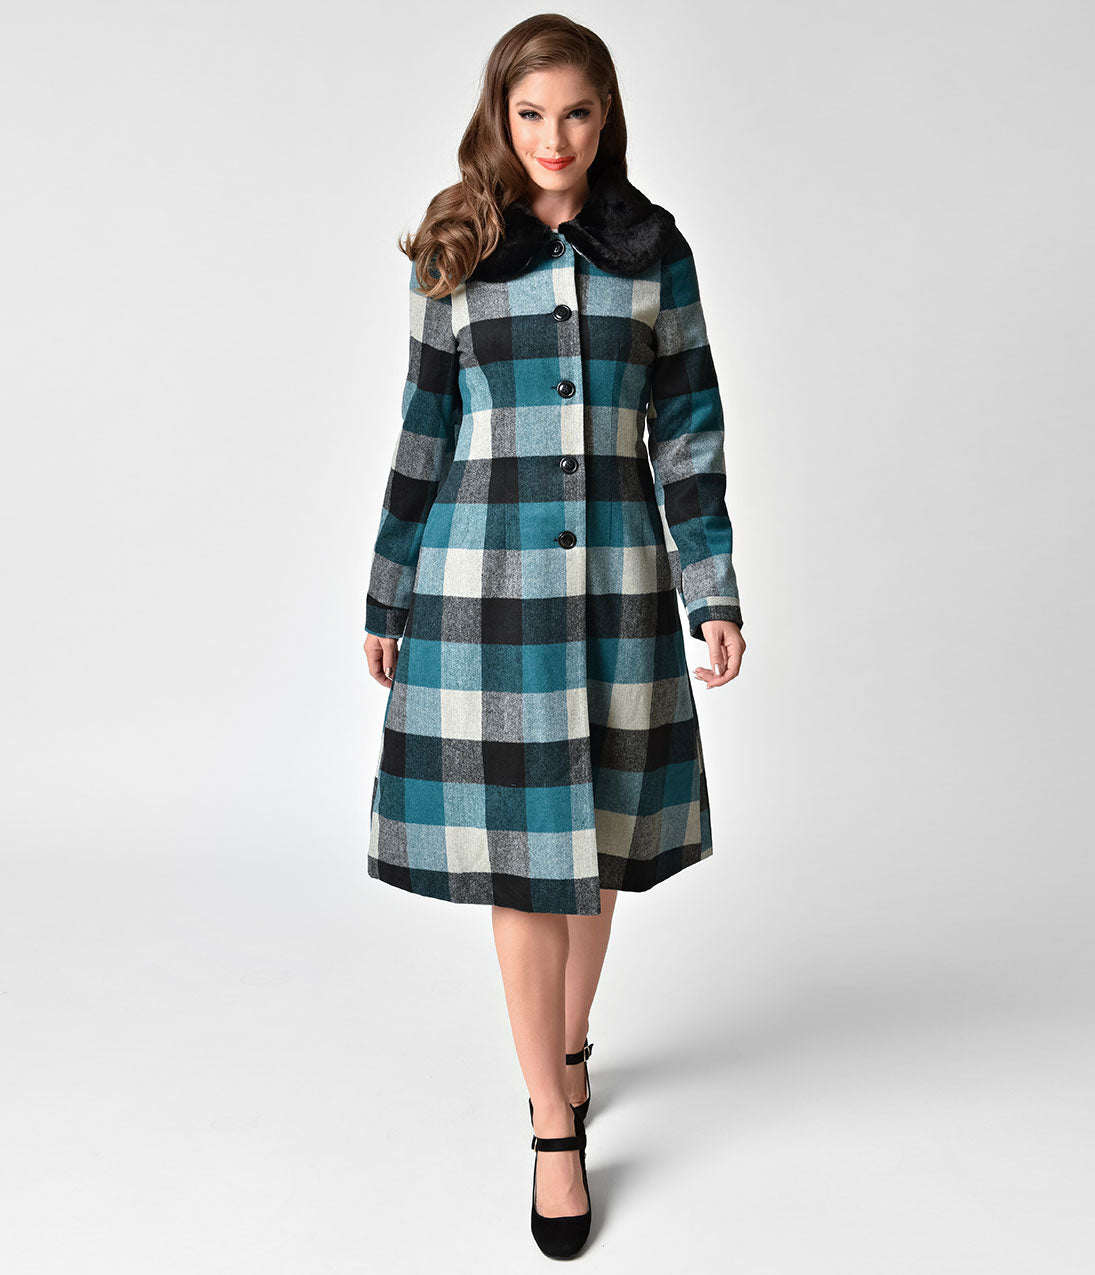 Vintage Coats & Jackets | Retro Coats and Jackets Voodoo Vixen Blue  Black Plaid Wooly Beatrice Coat $91.00 AT vintagedancer.com